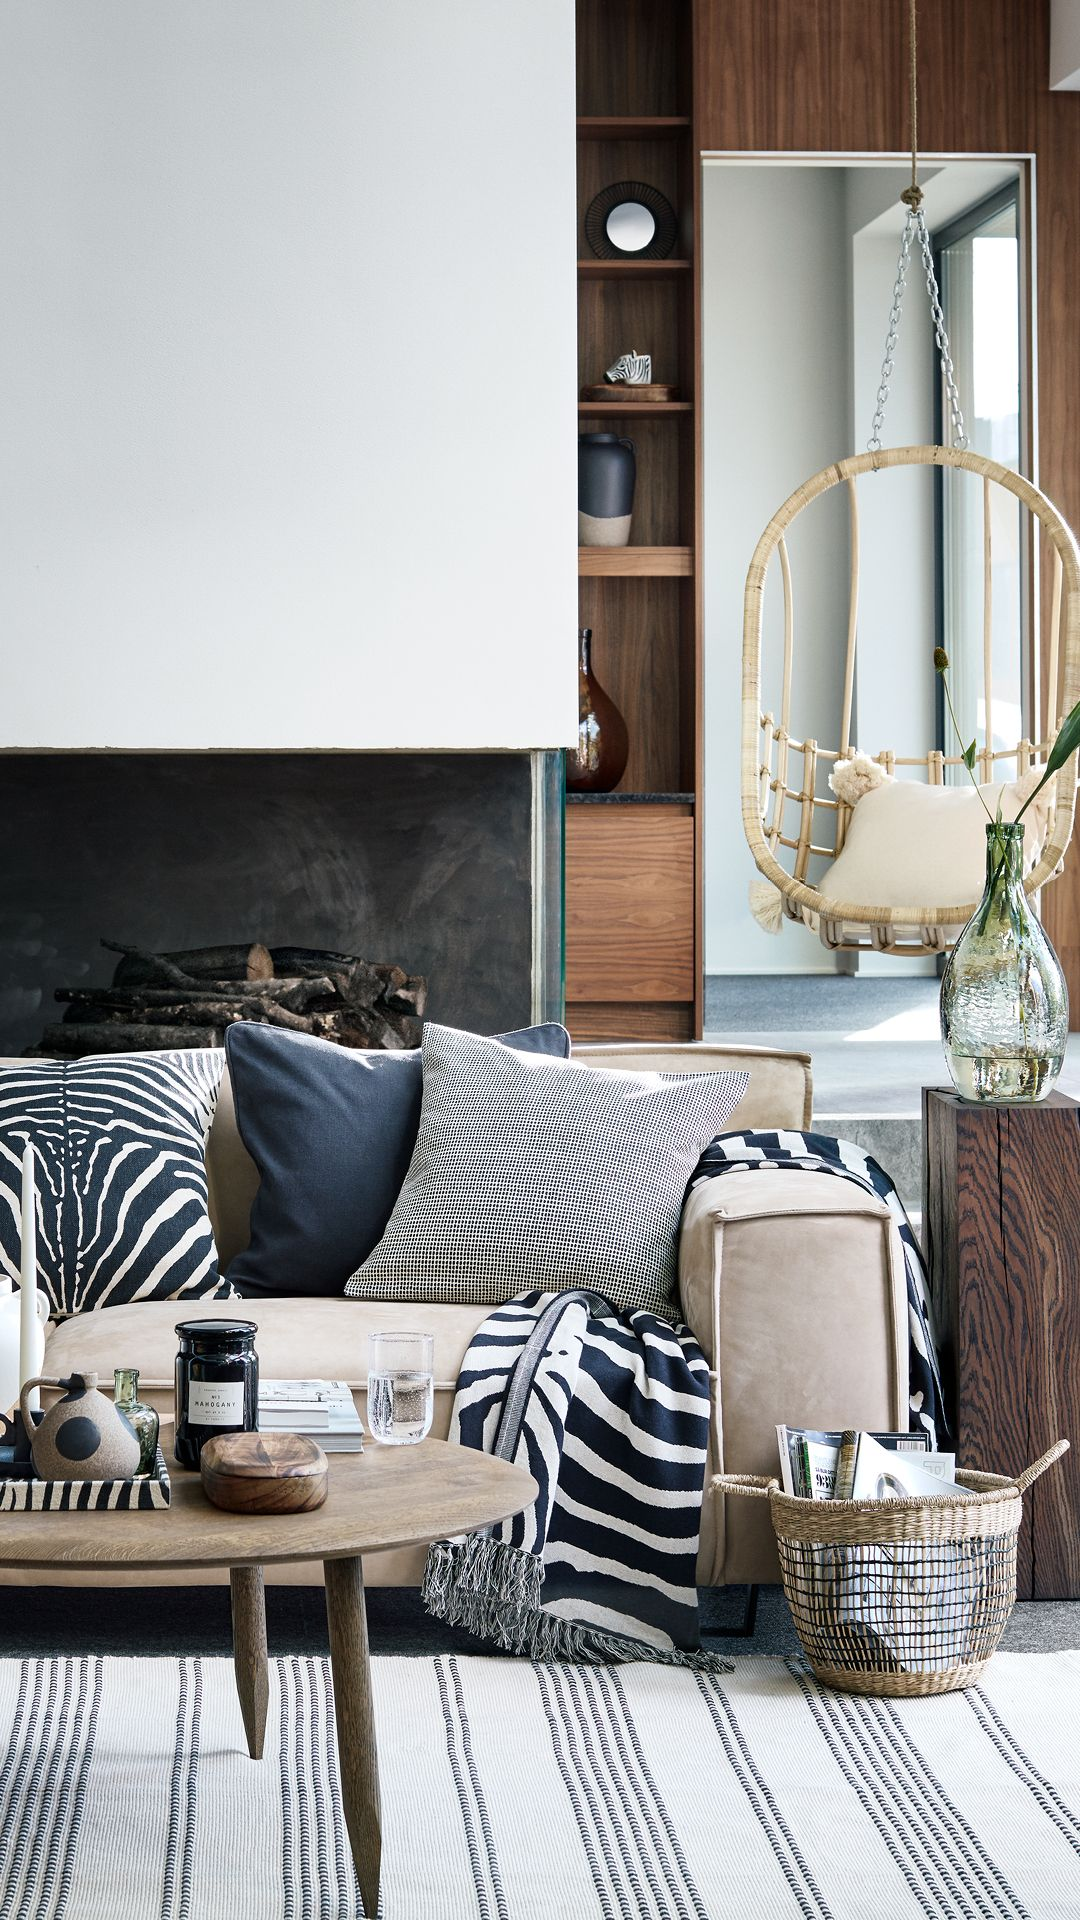 Discover our stylish cushions in zebra prints and neutral tones